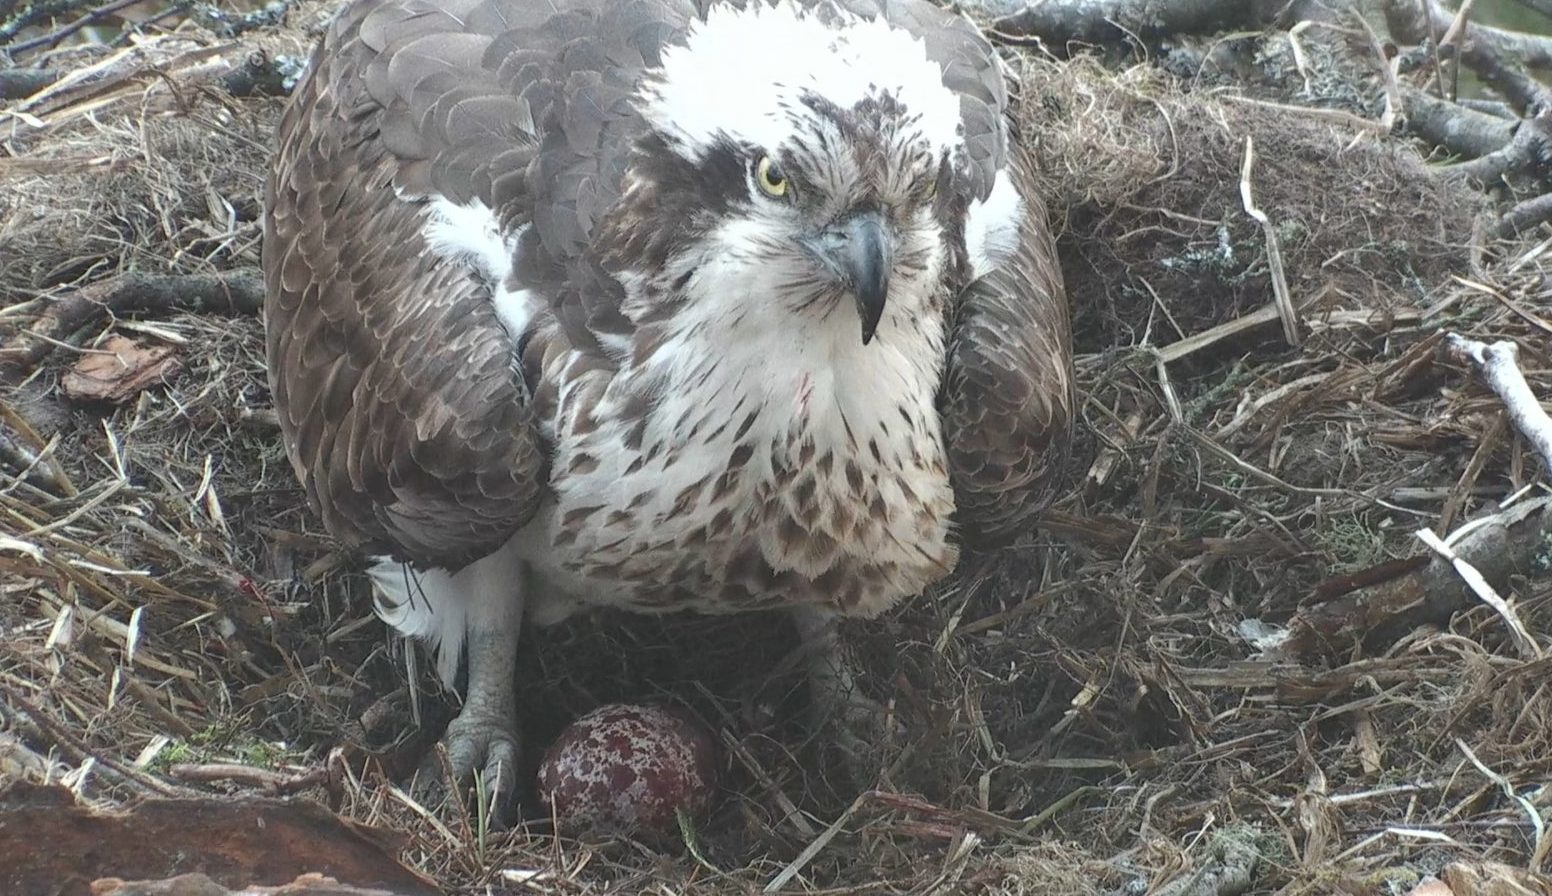 The osprey and egg at the Loch of the Lowes.